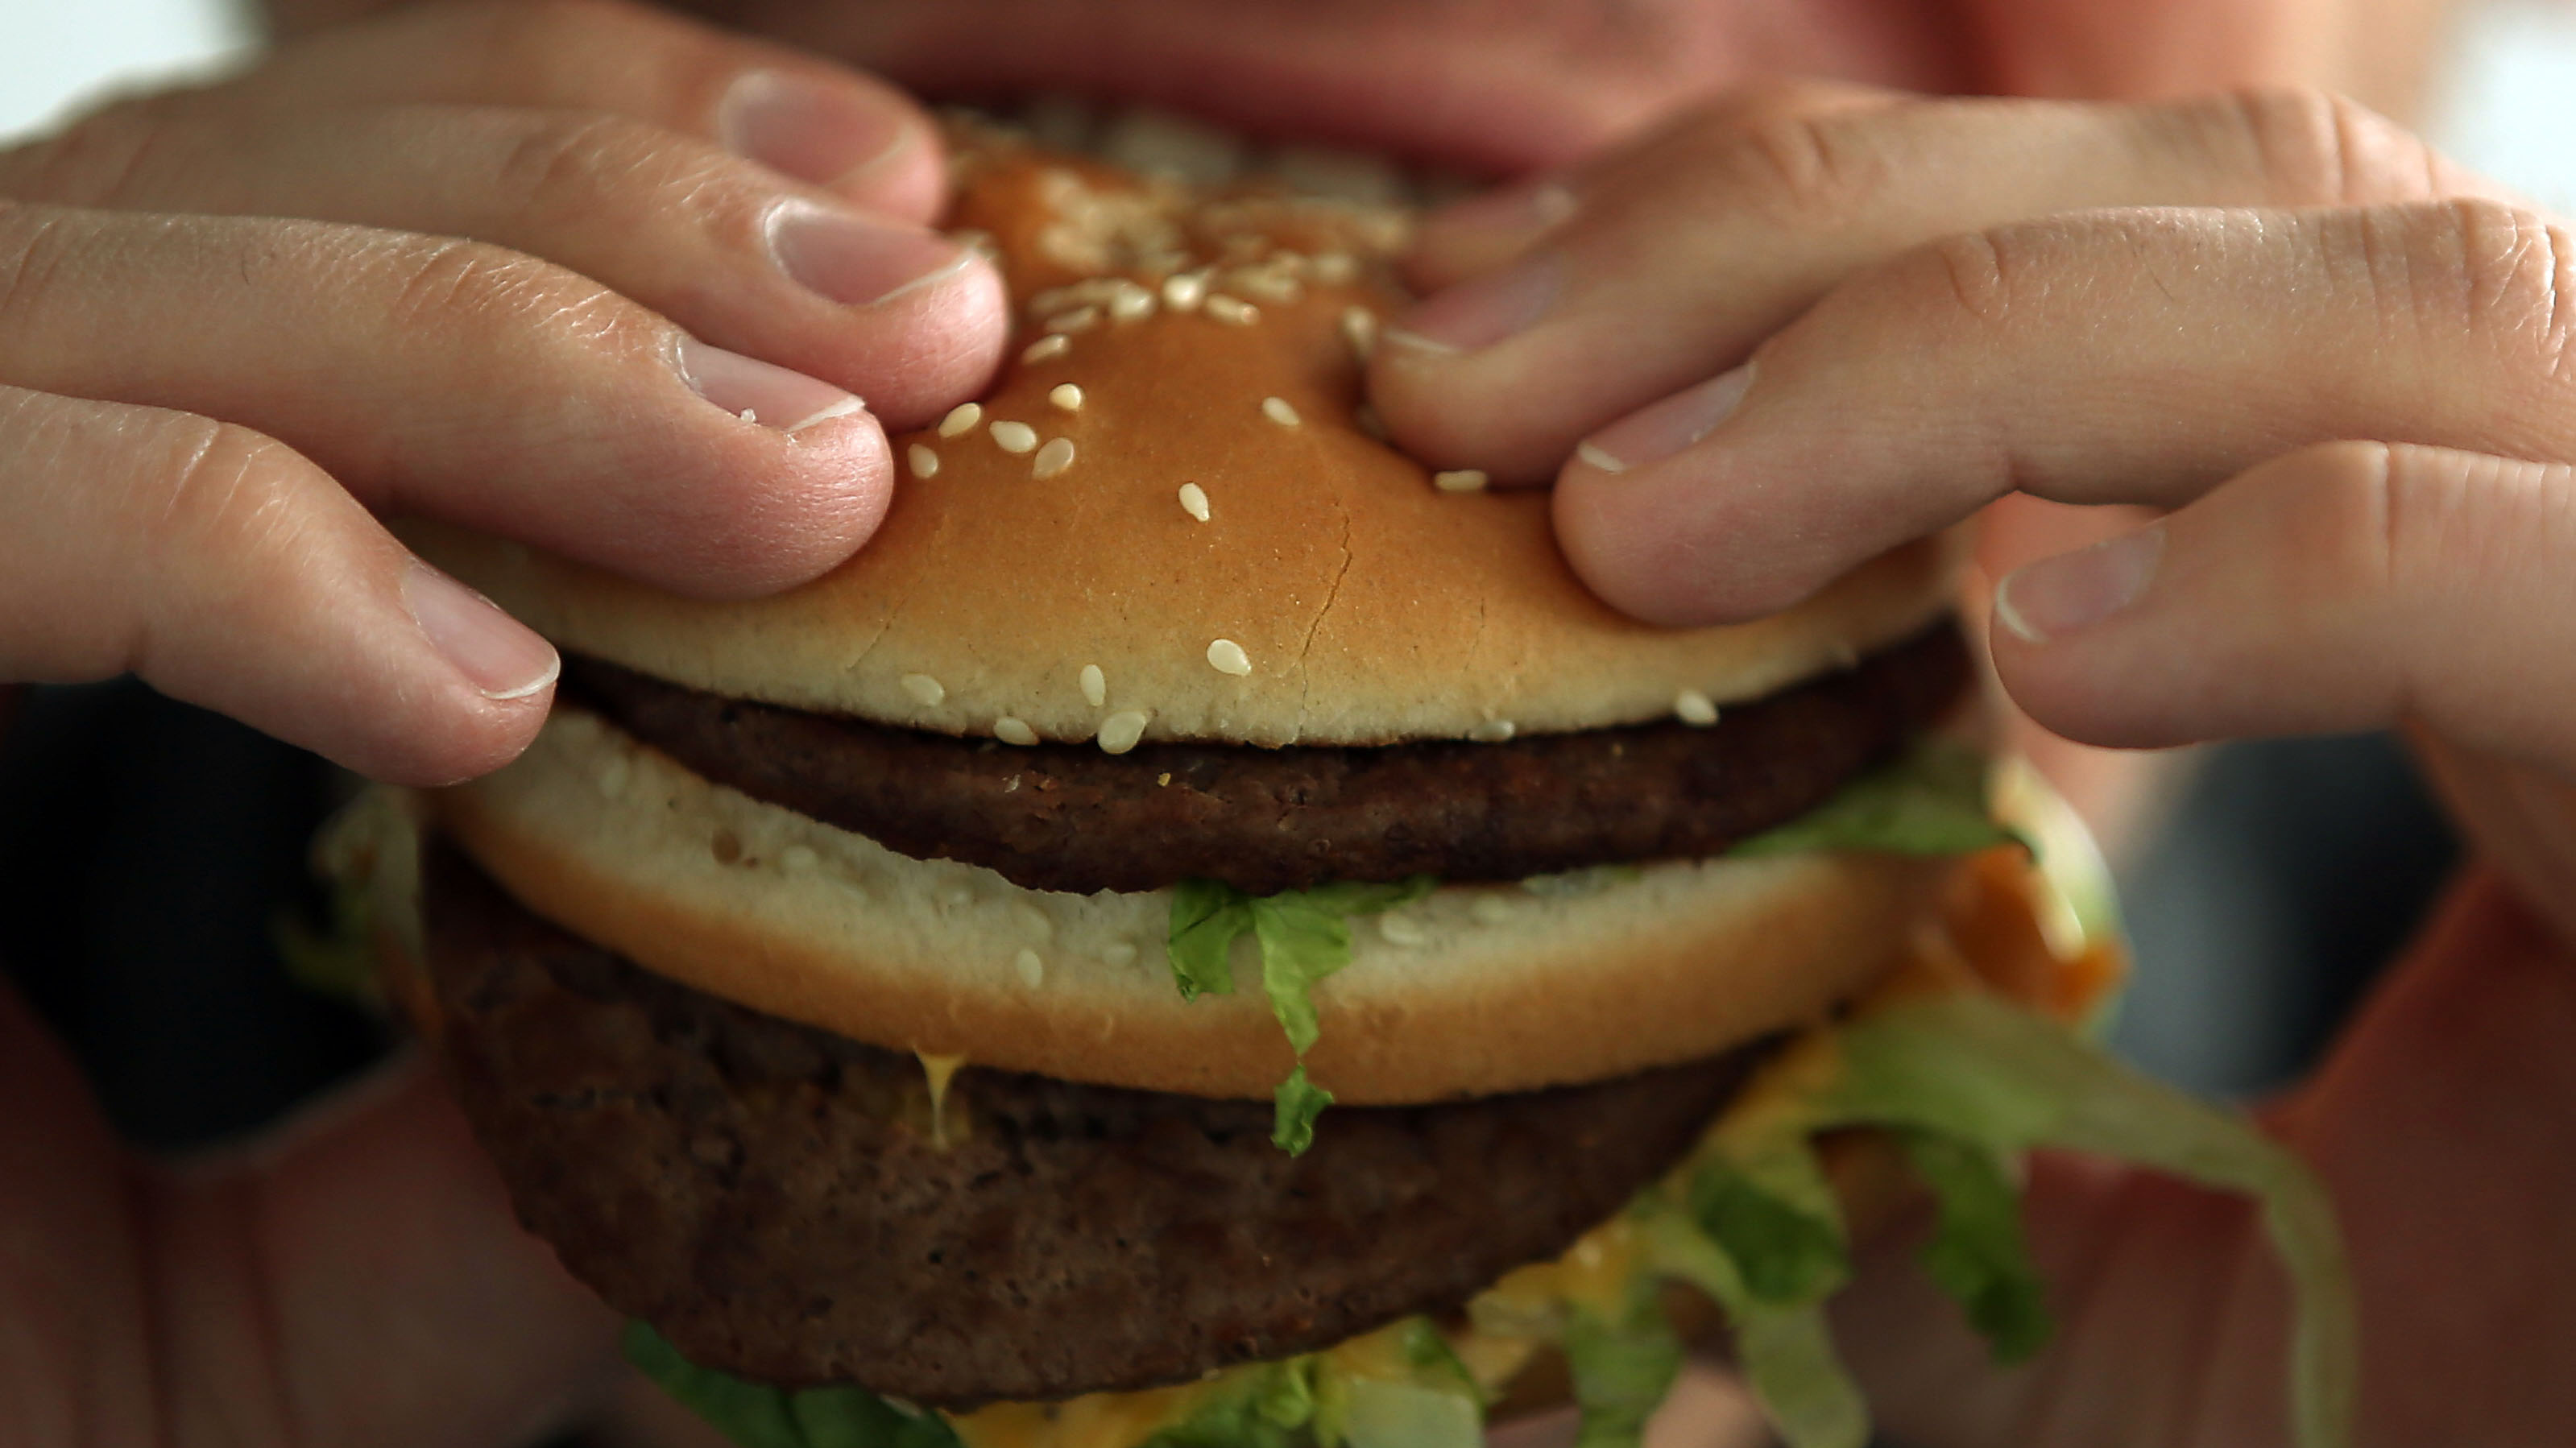 For Big Mac's 50th anniversary, McDonald's is giving away free burgers